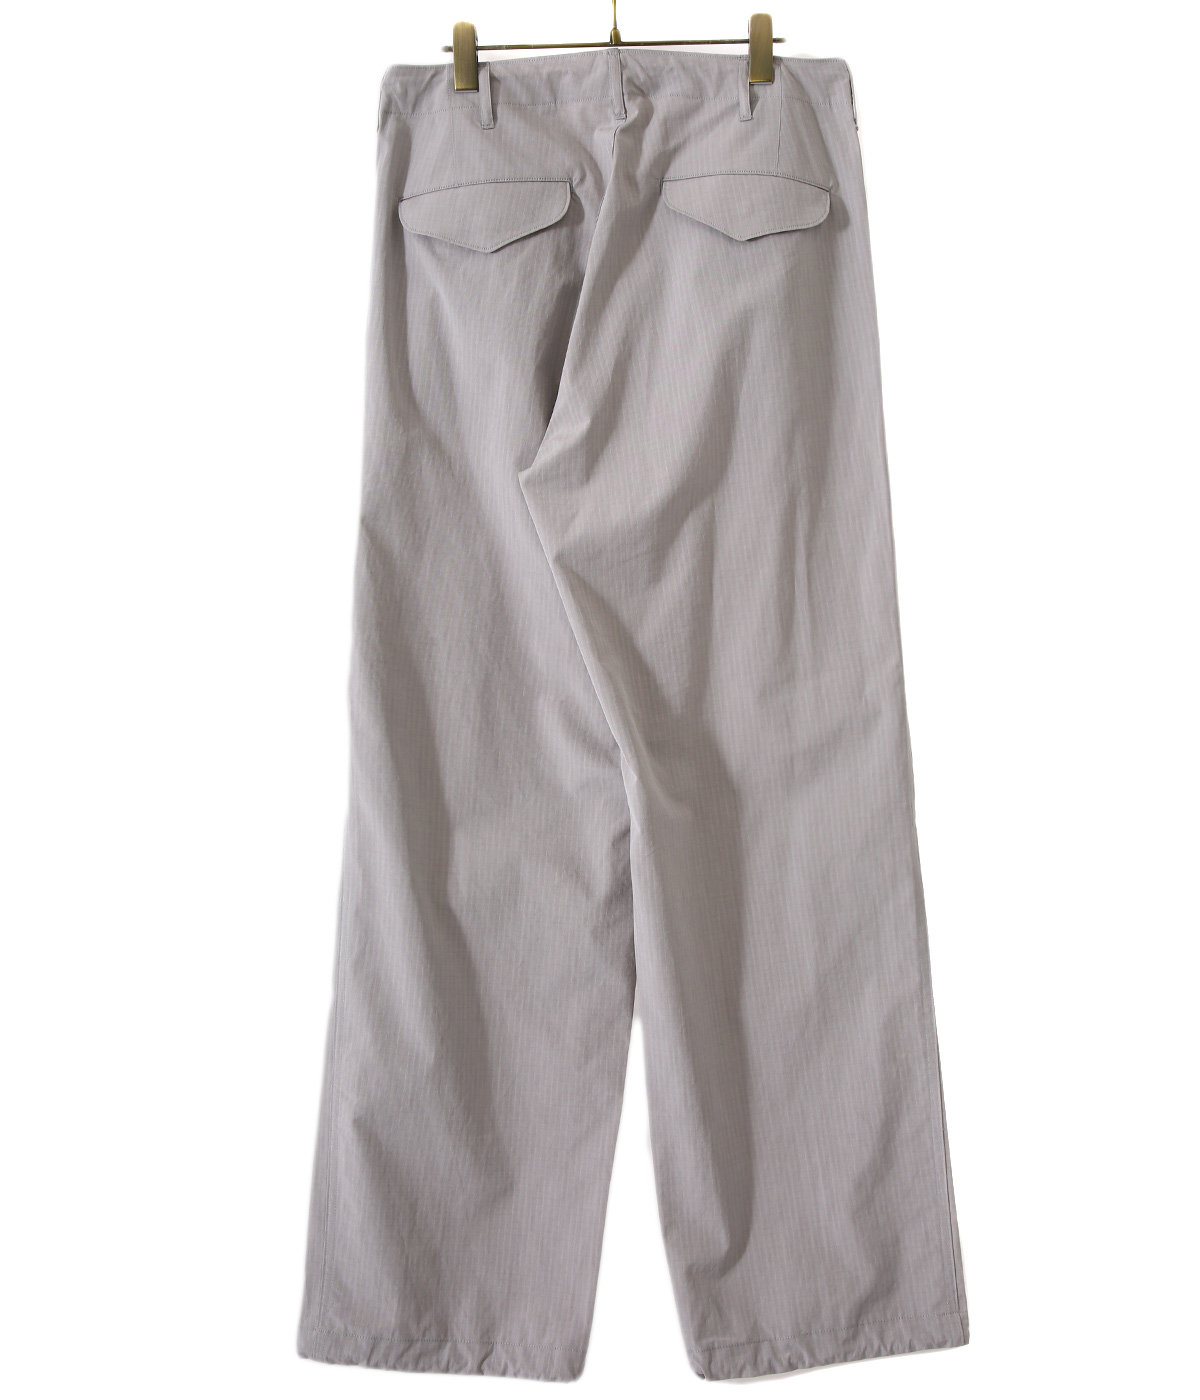 WASHED FINX RIPSTOP CHAMBRAY FIELD PANTS